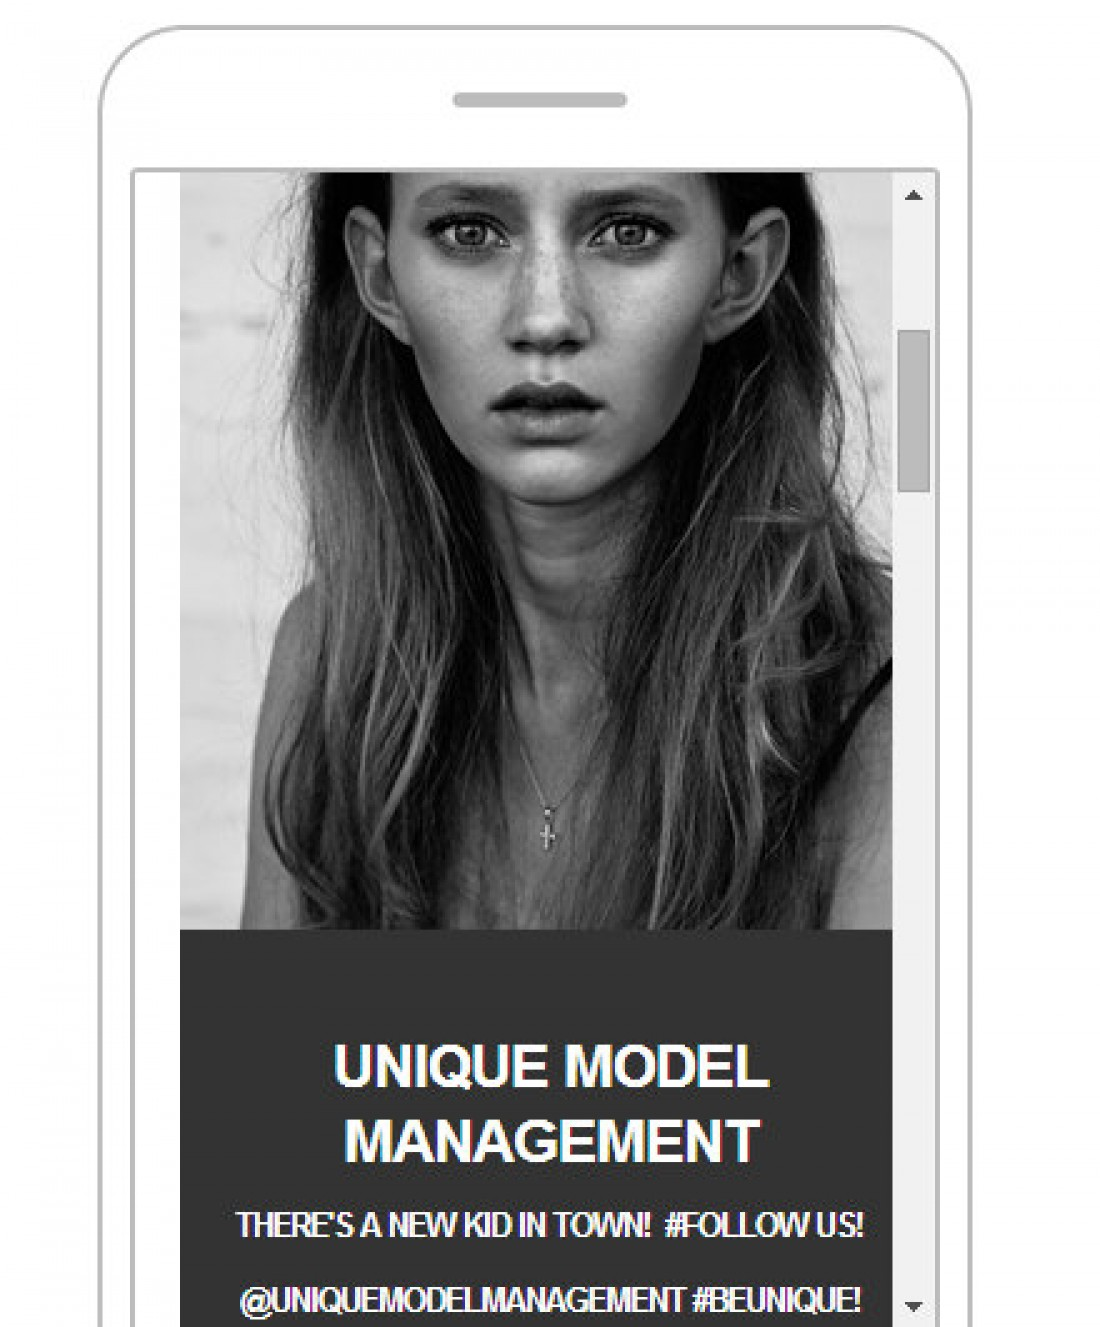 UNIQUE MODEL MANAGEMENT LAUNCHES!